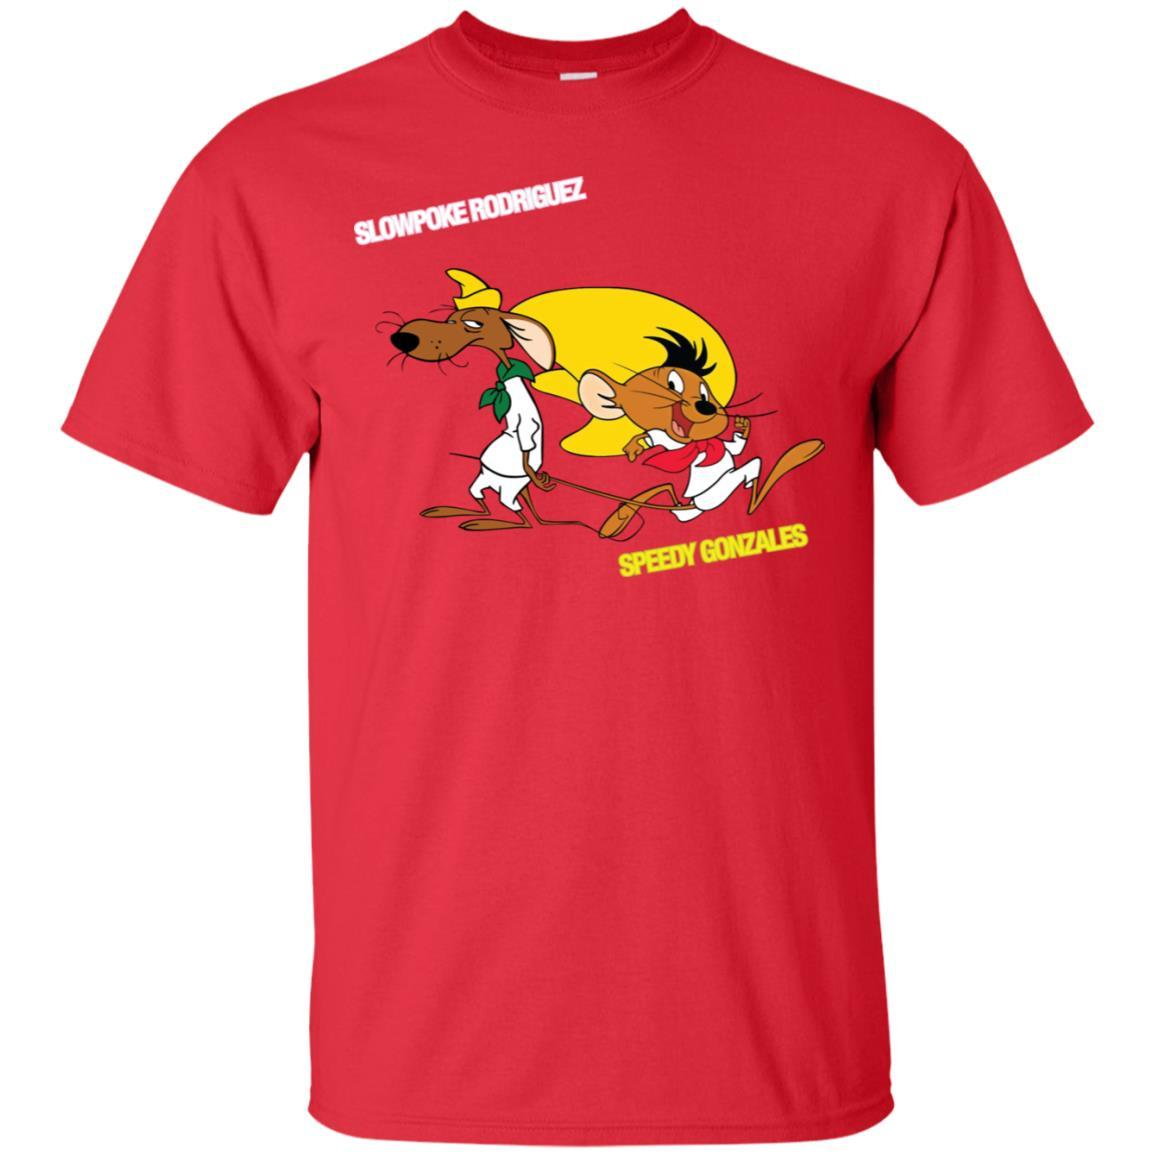 Slowpoke Rodriguez Speedy Gonzalez Funny Vintage Cartoon Tee T-Shirt G200 Gildan Ultra Cotton T-Shirt / Red / 3XL